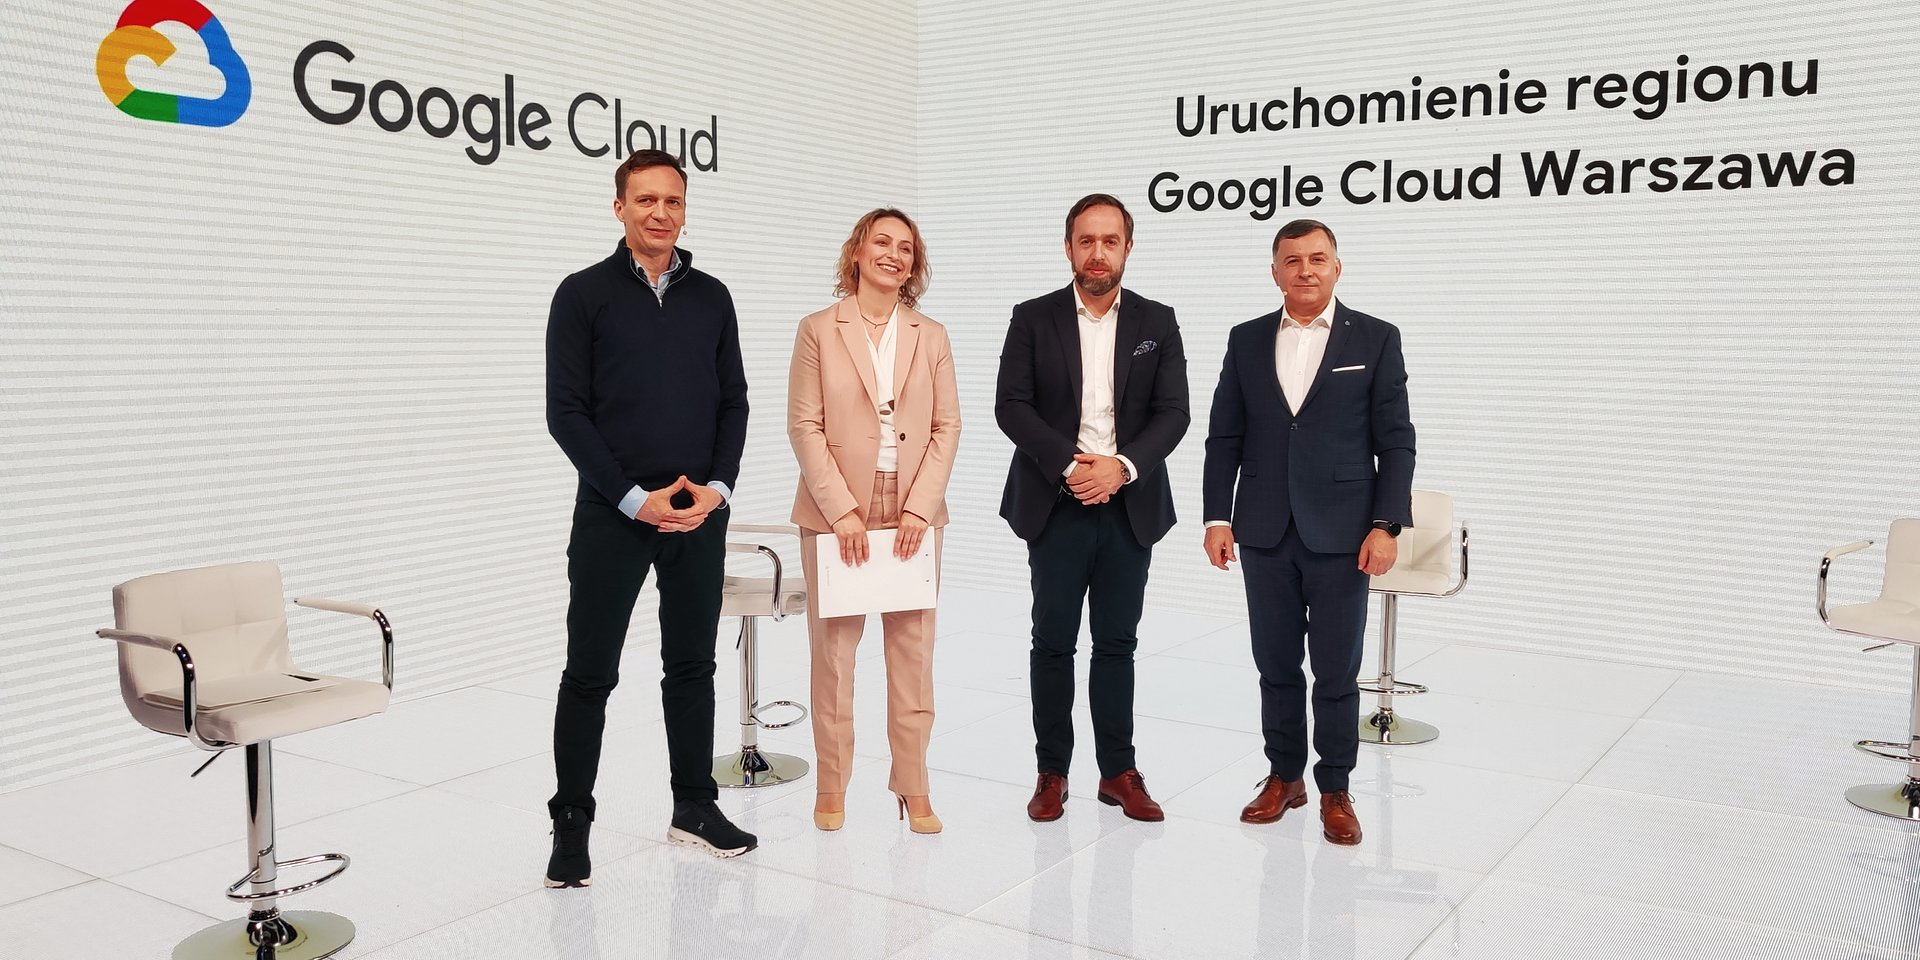 We have a formula for acceleration: the Google Cloud Warsaw region is now available!